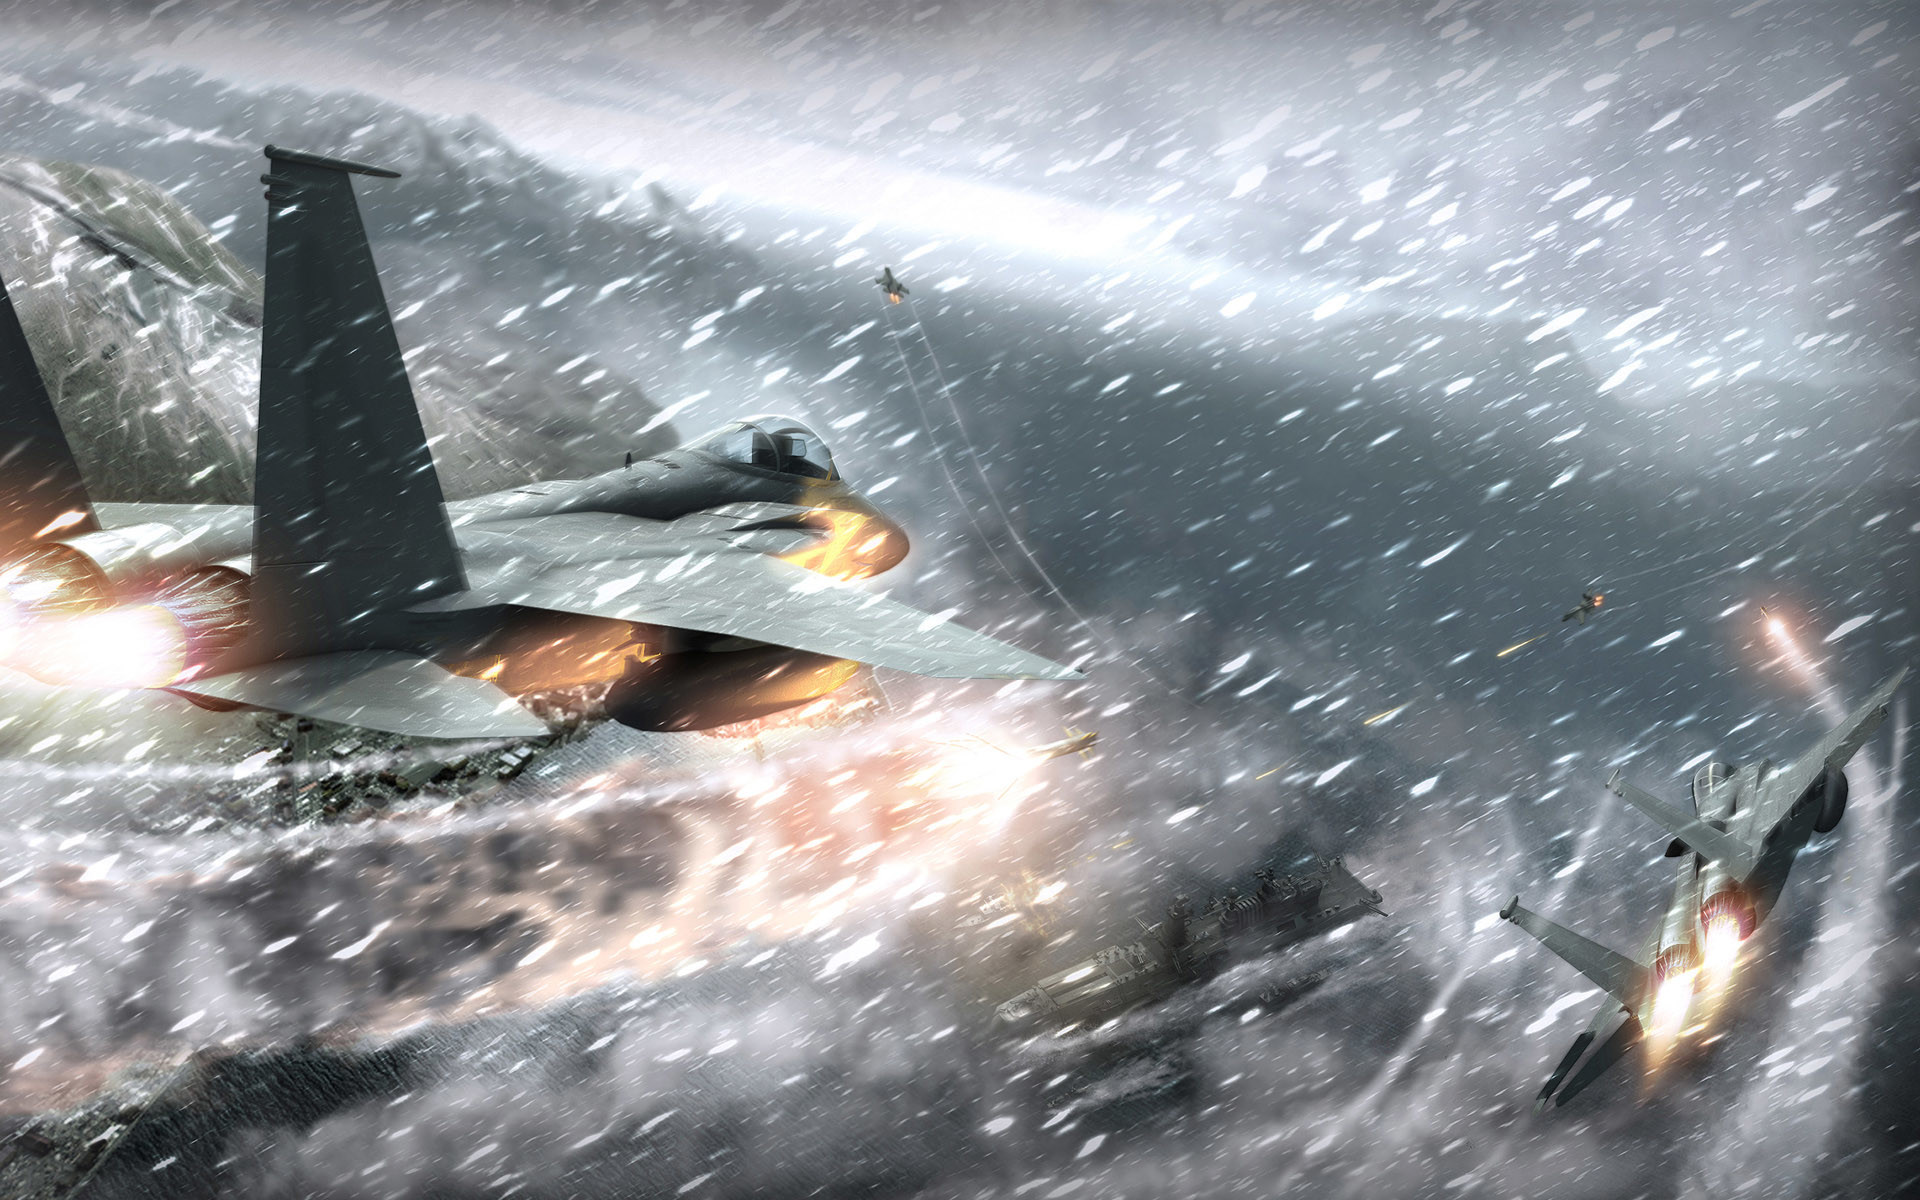 Res: 1920x1200, ACE COMBAT game jet airplane aircraft fighter plane military battle weapon  missile d wallpaper |  | 225426 | WallpaperUP